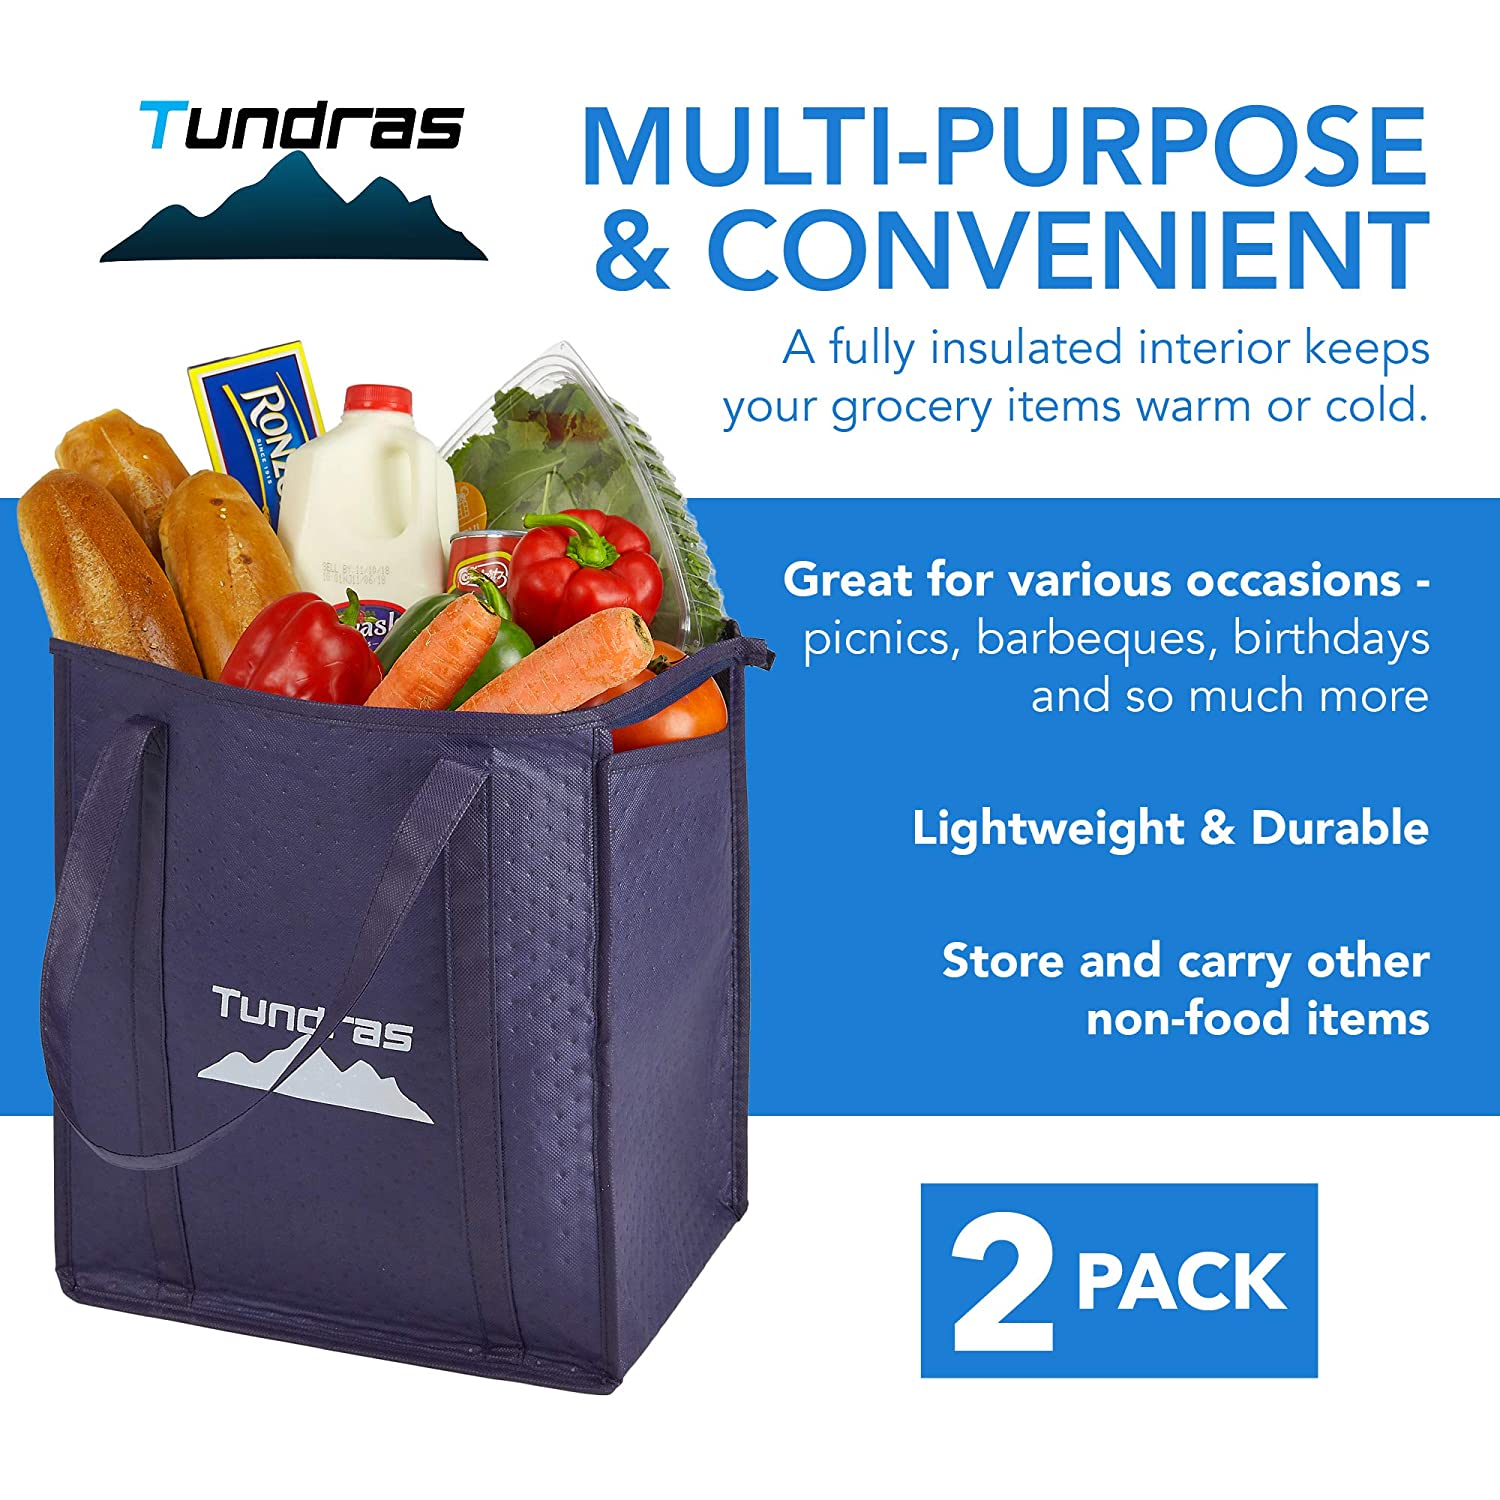 3a3eb6442 ... Insulated Grocery Bags - 2 Pack, Navy - 7.5 Gallon Thermal Cooler Tote  - Reinforced Handles, Zipper Closure, Folds Flat - For Shopping, Hot and  Cold ...